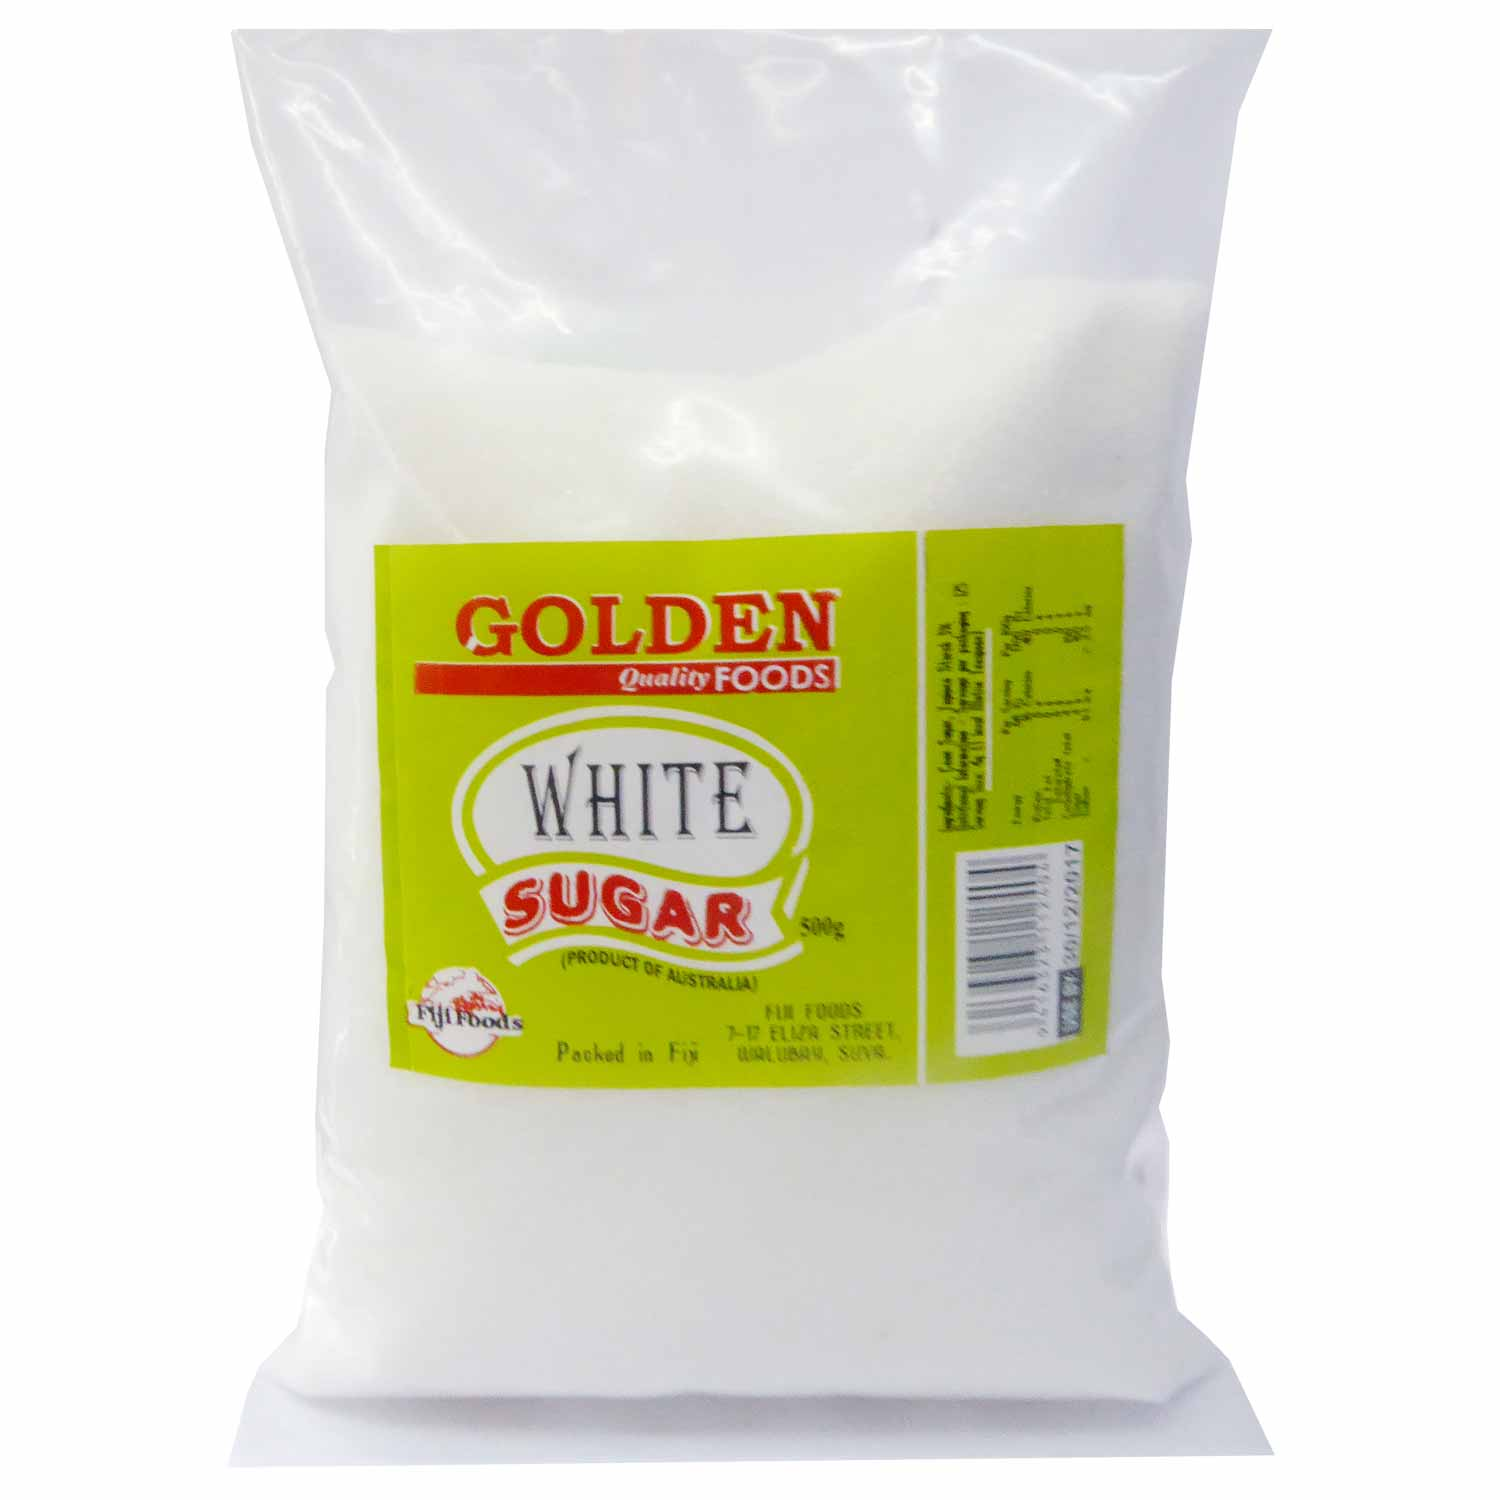 Golden White Sugar